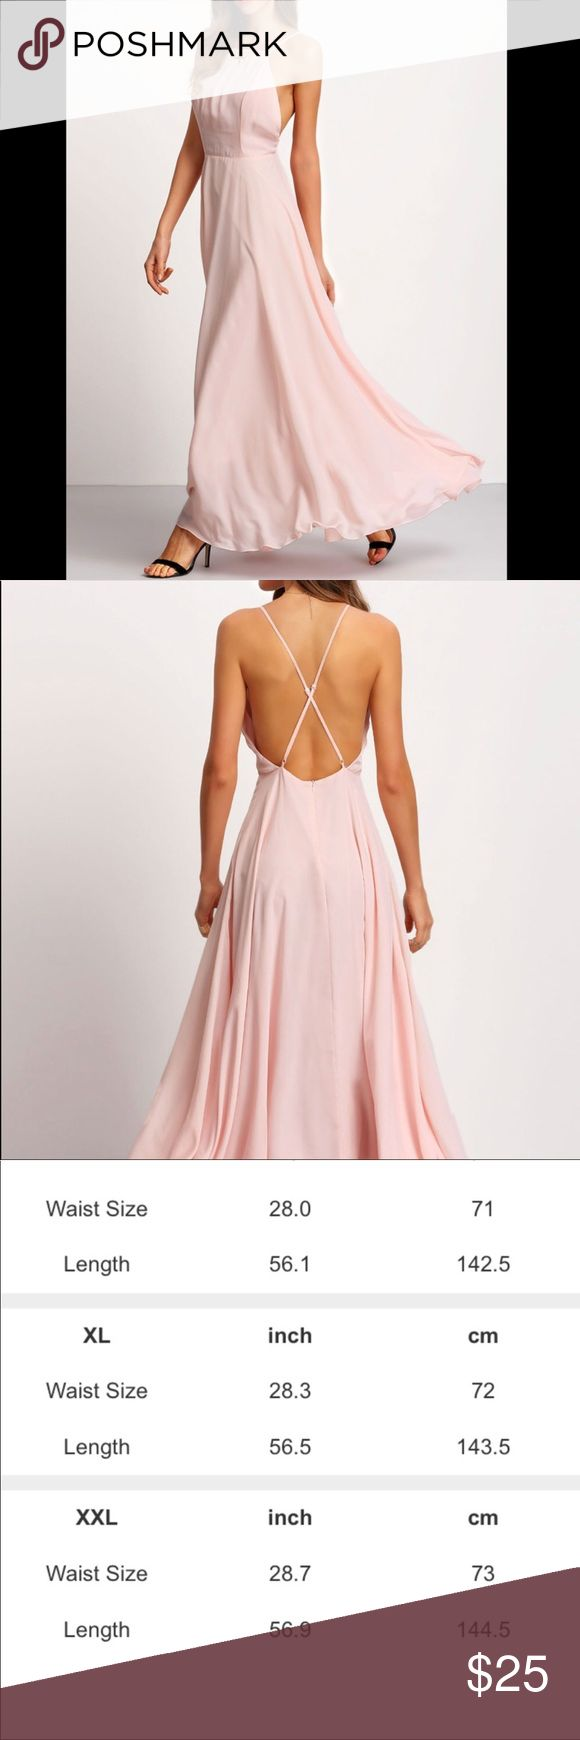 💐NWOT Plus Pale Salmon Maxi Dress This super cute pale salmon (pastel pink) maxi dress is perfect for the spring or summer, it features a bare back design, long flowing skirt, spaghetti straps, this dress is lined, true to size - see size chart for measurements. Dresses Maxi